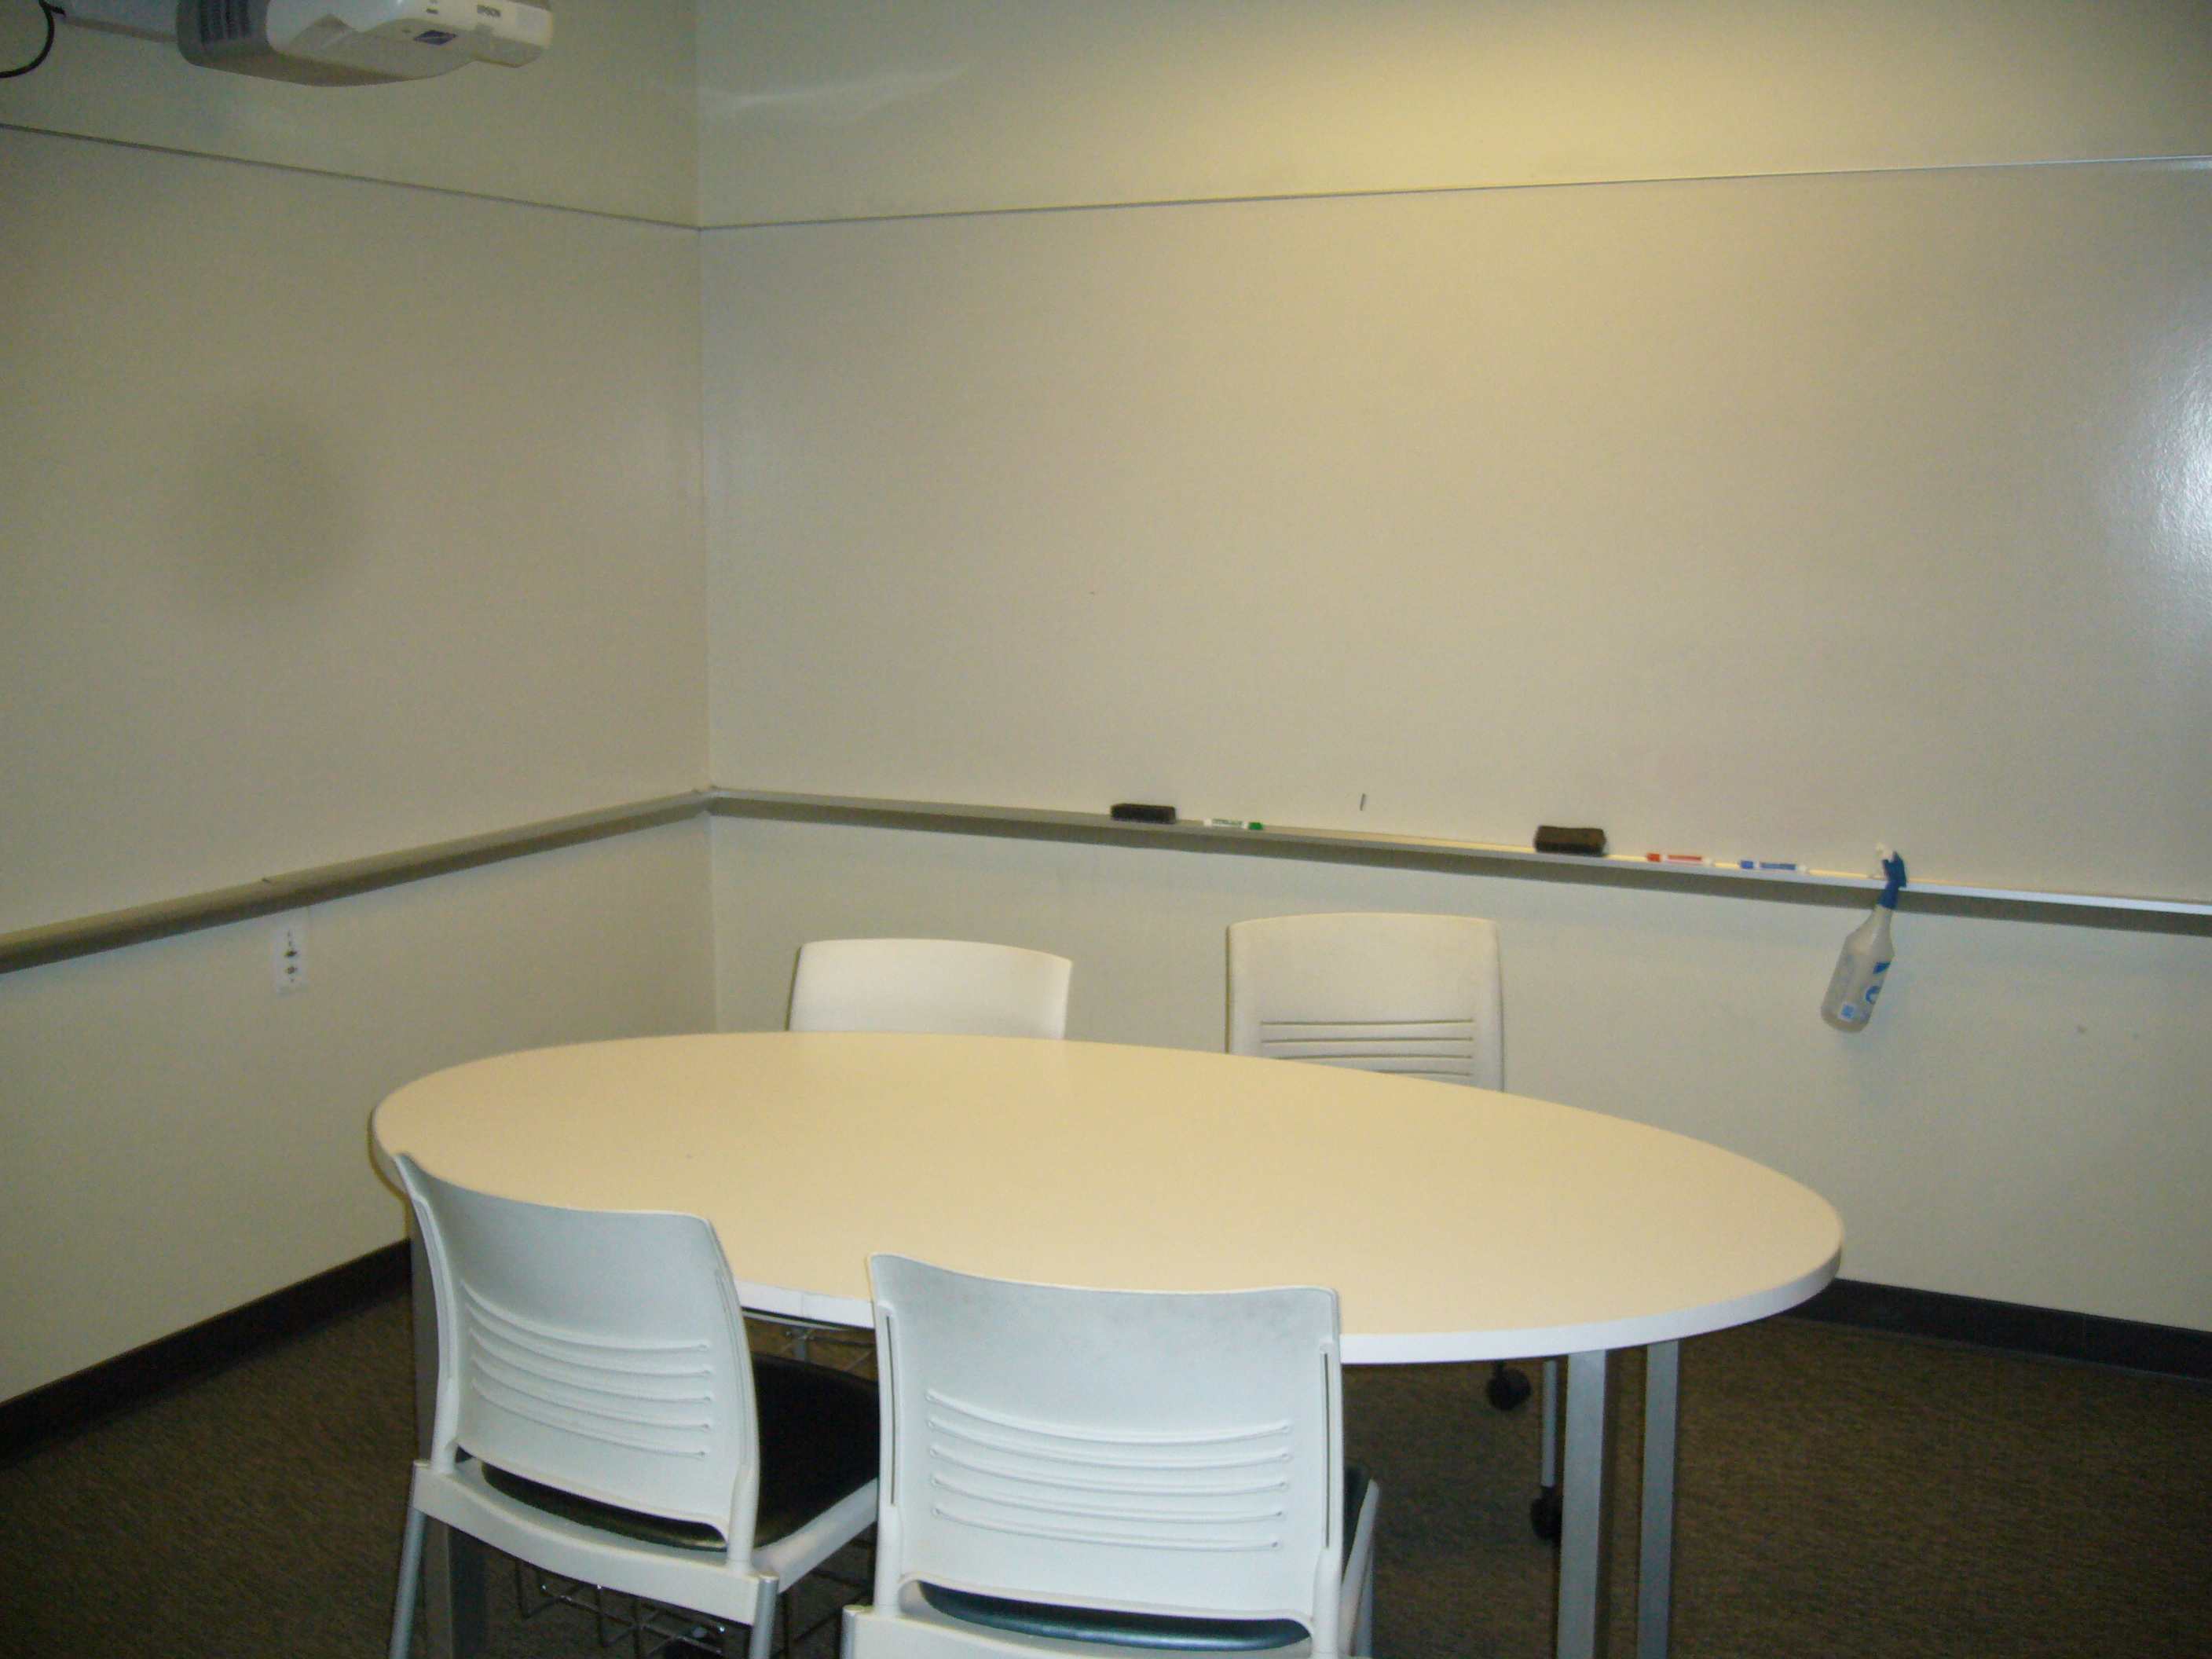 Bierce Library Study Room 156D